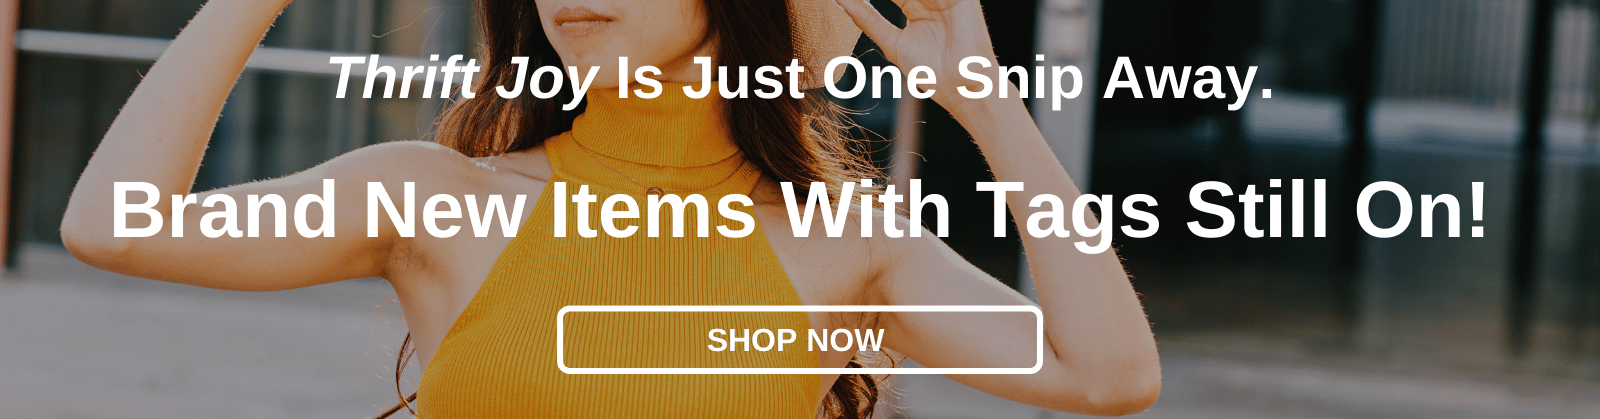 Thrift Joy Is Just One Snip Away. Brand New Items With Tags Still On! [Shop Now]